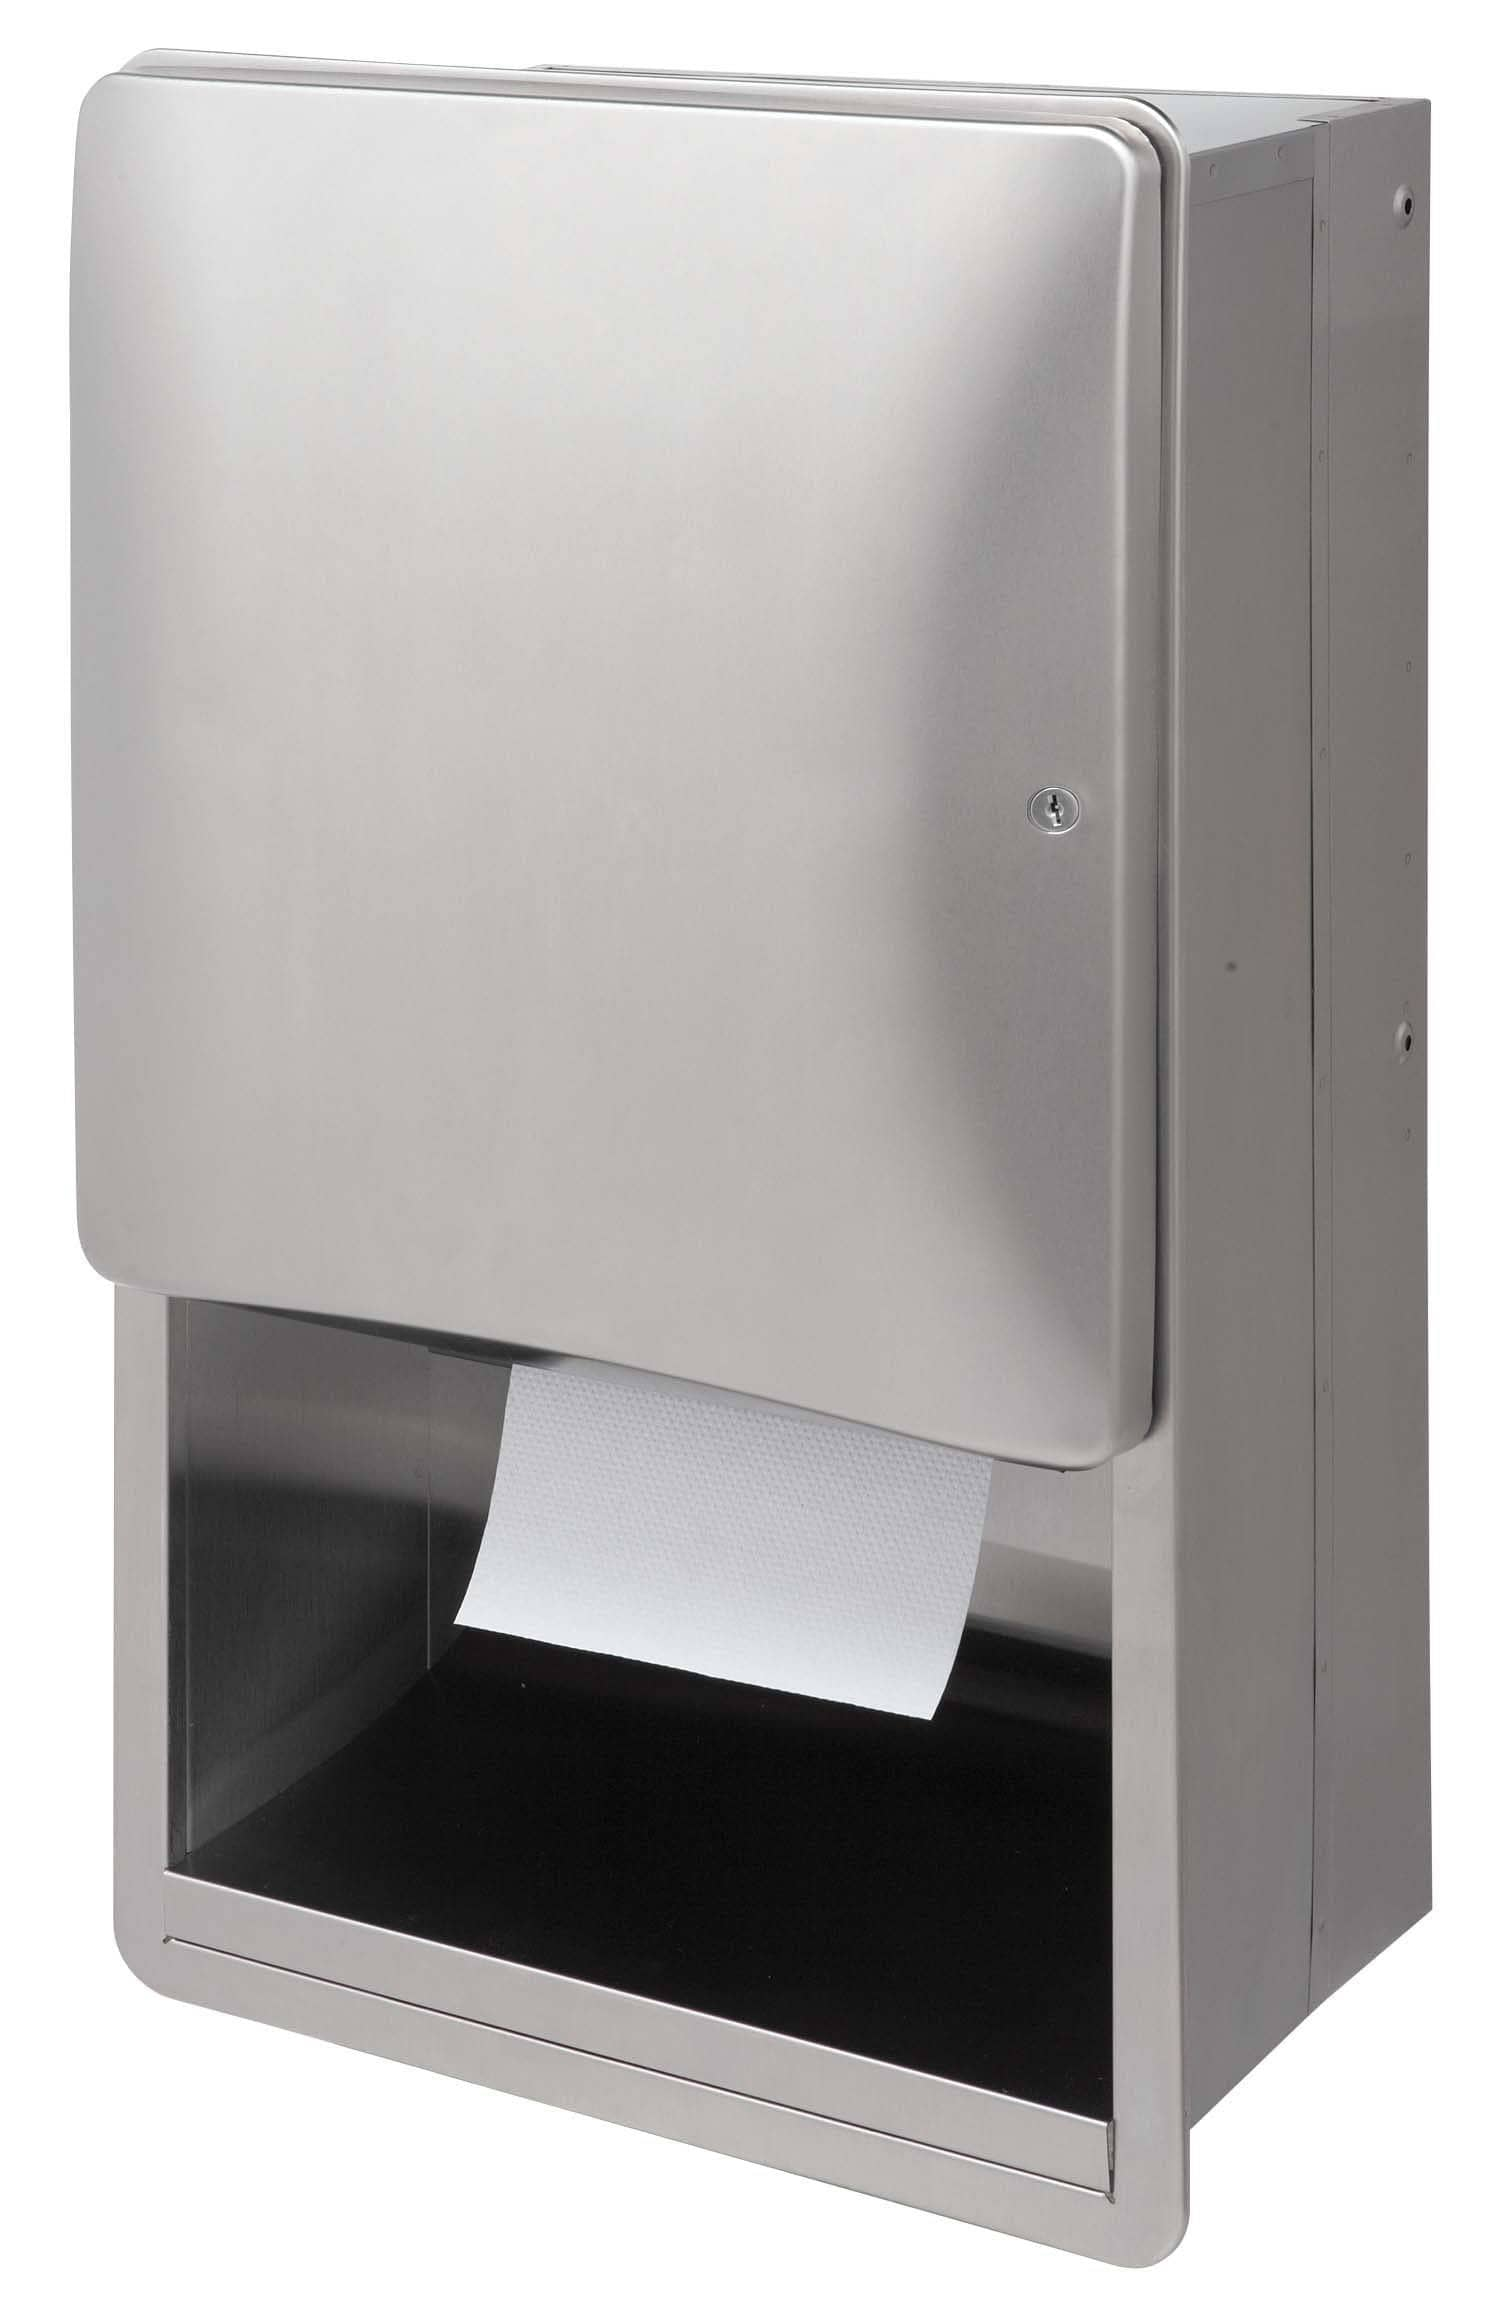 Bradley 2A01 Commercial Paper Towel Dispenser, Recessed-Mounted, Stainless Steel - TotalRestroom.com